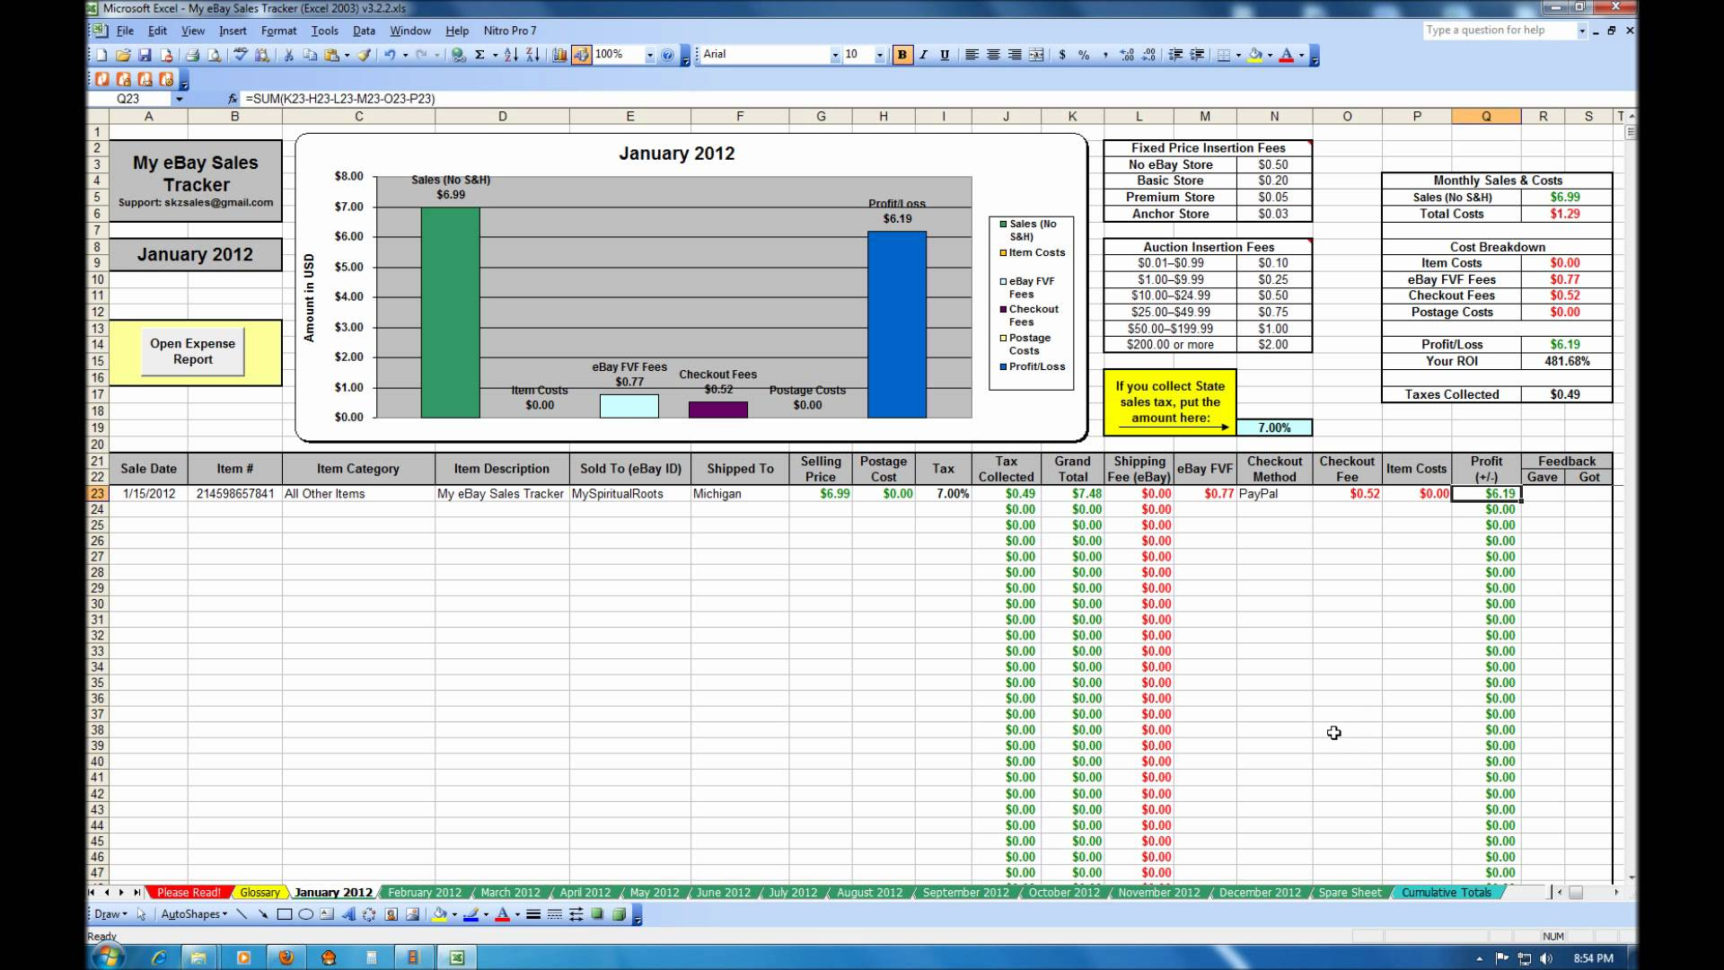 Sales Tracking Spreadsheet On Excel Spreadsheet Free Excel Intended For Sales Tracking Spreadsheet Template